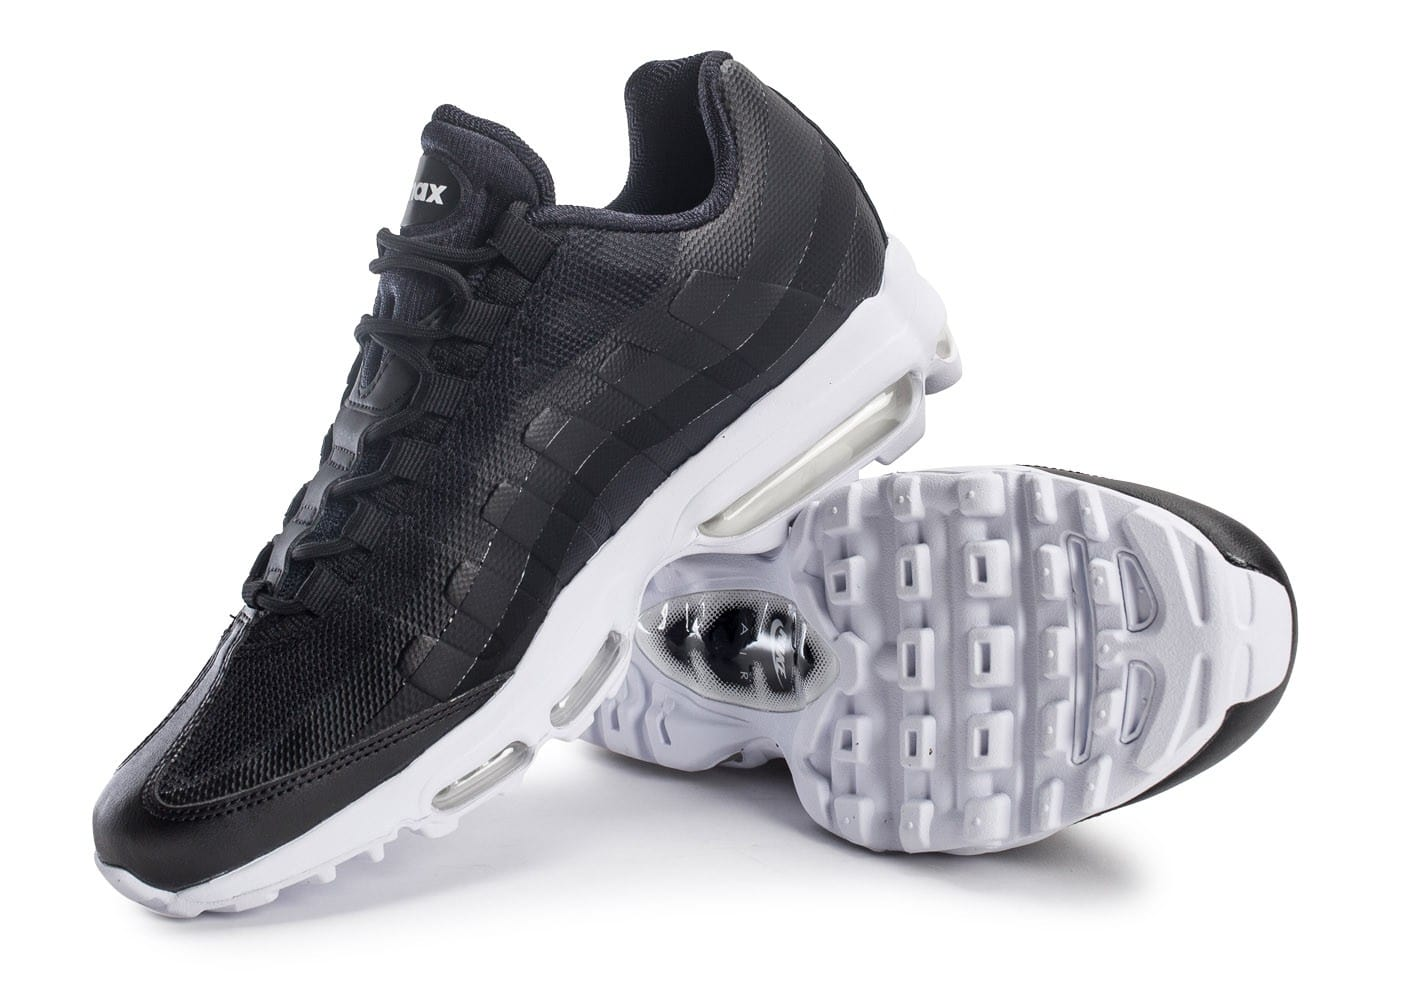 nike air max 95 ultra se noire chaussures homme chausport. Black Bedroom Furniture Sets. Home Design Ideas